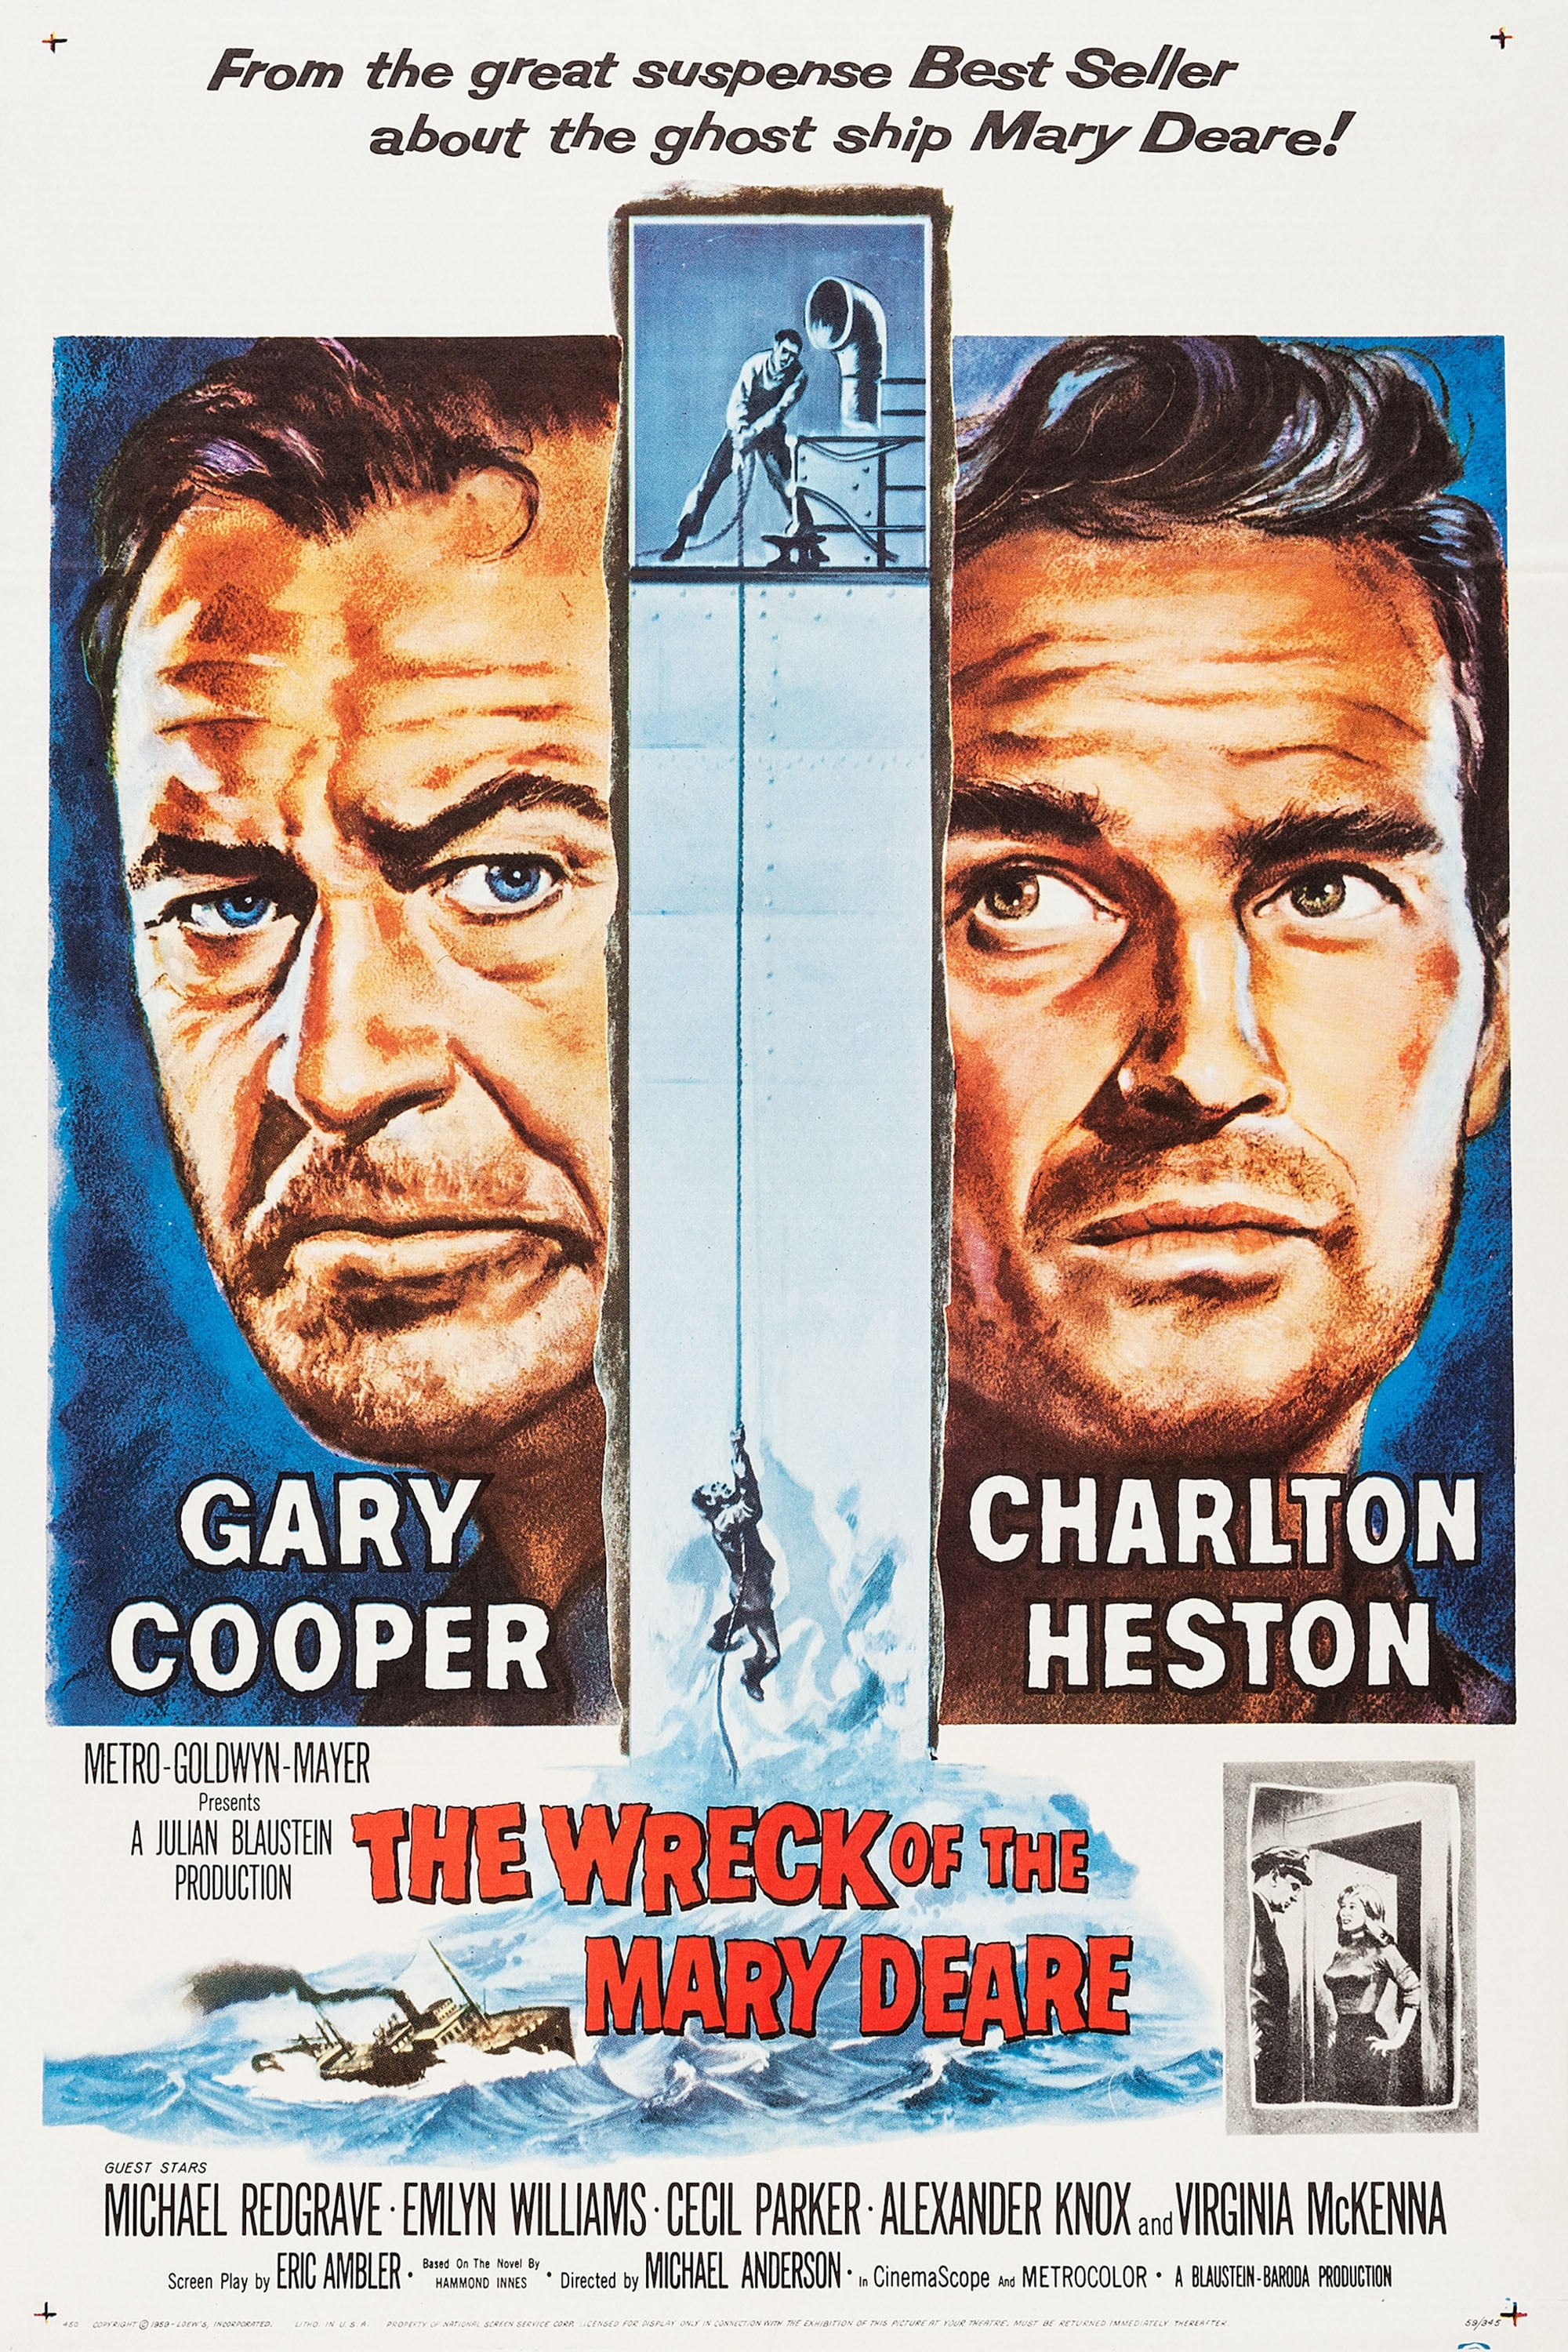 The Wreck of the Mary Deare (1959)